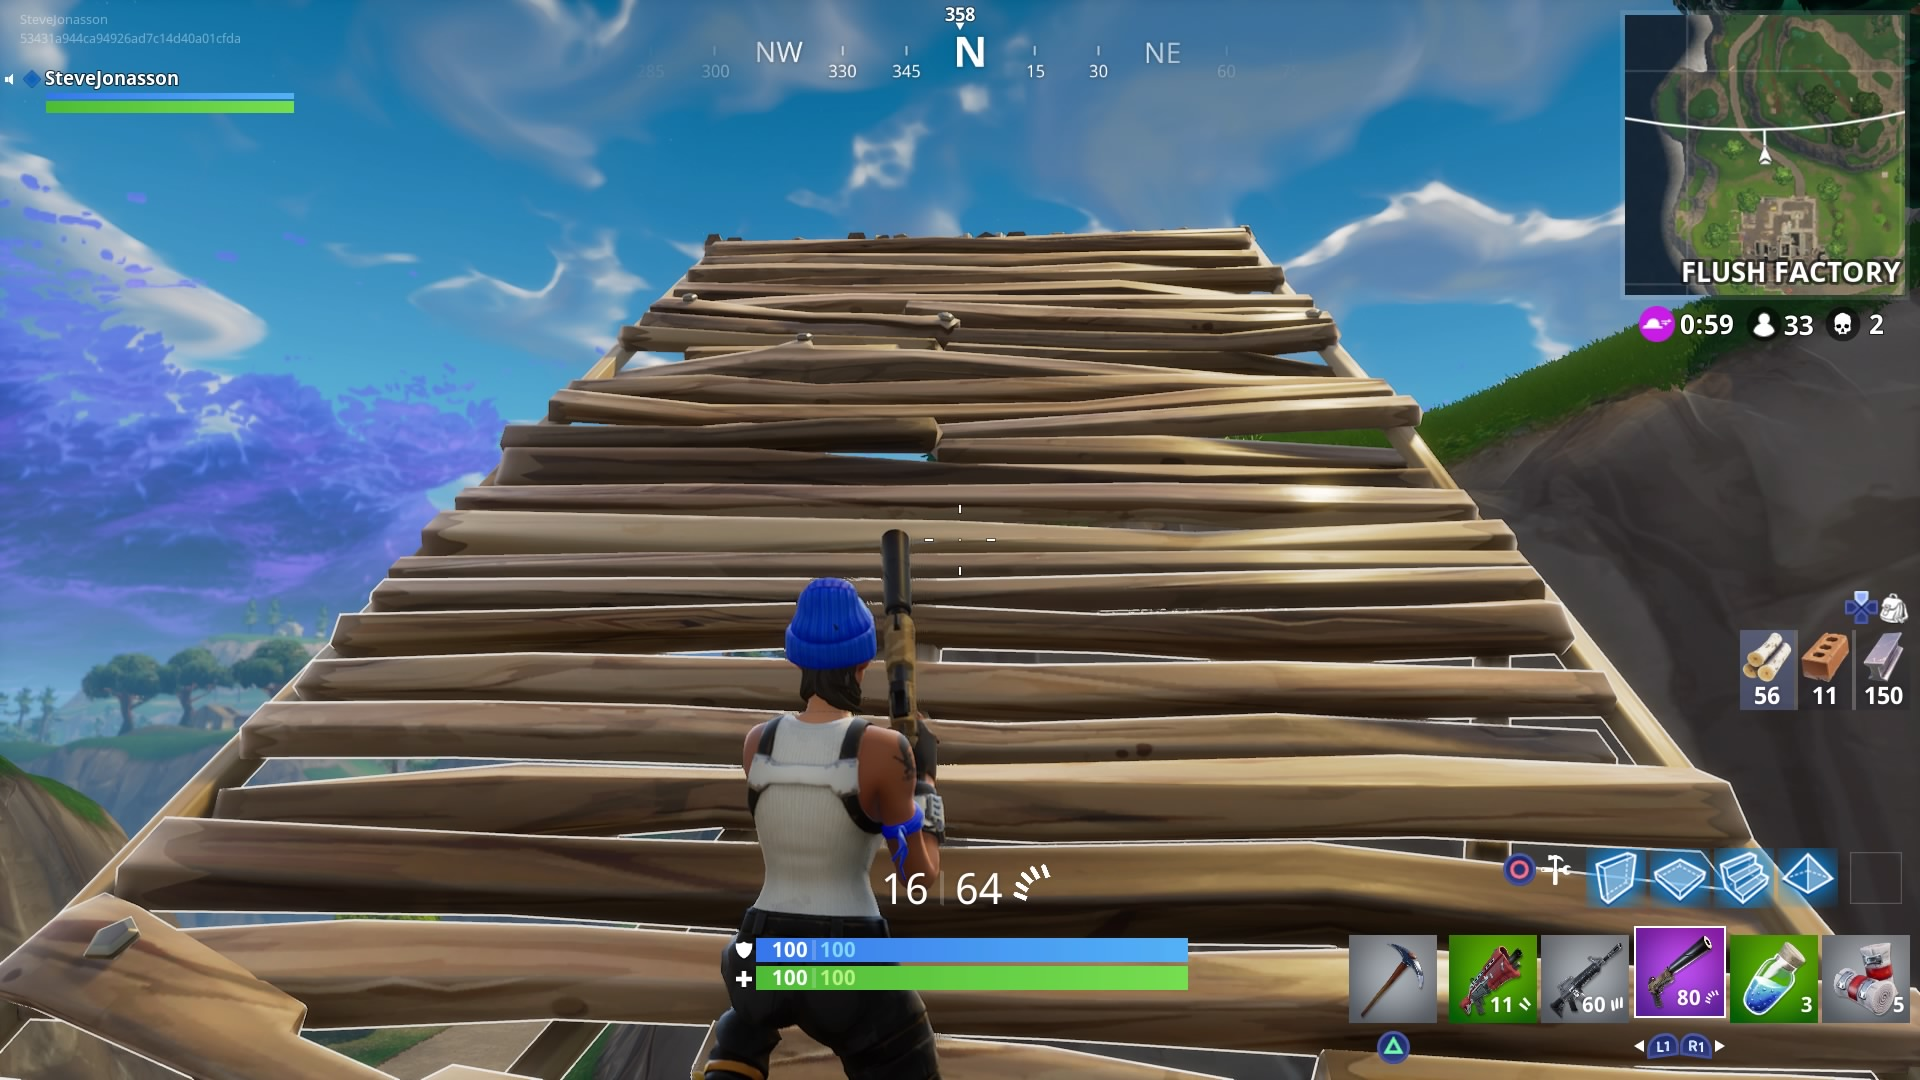 Building stairs in Fortnite